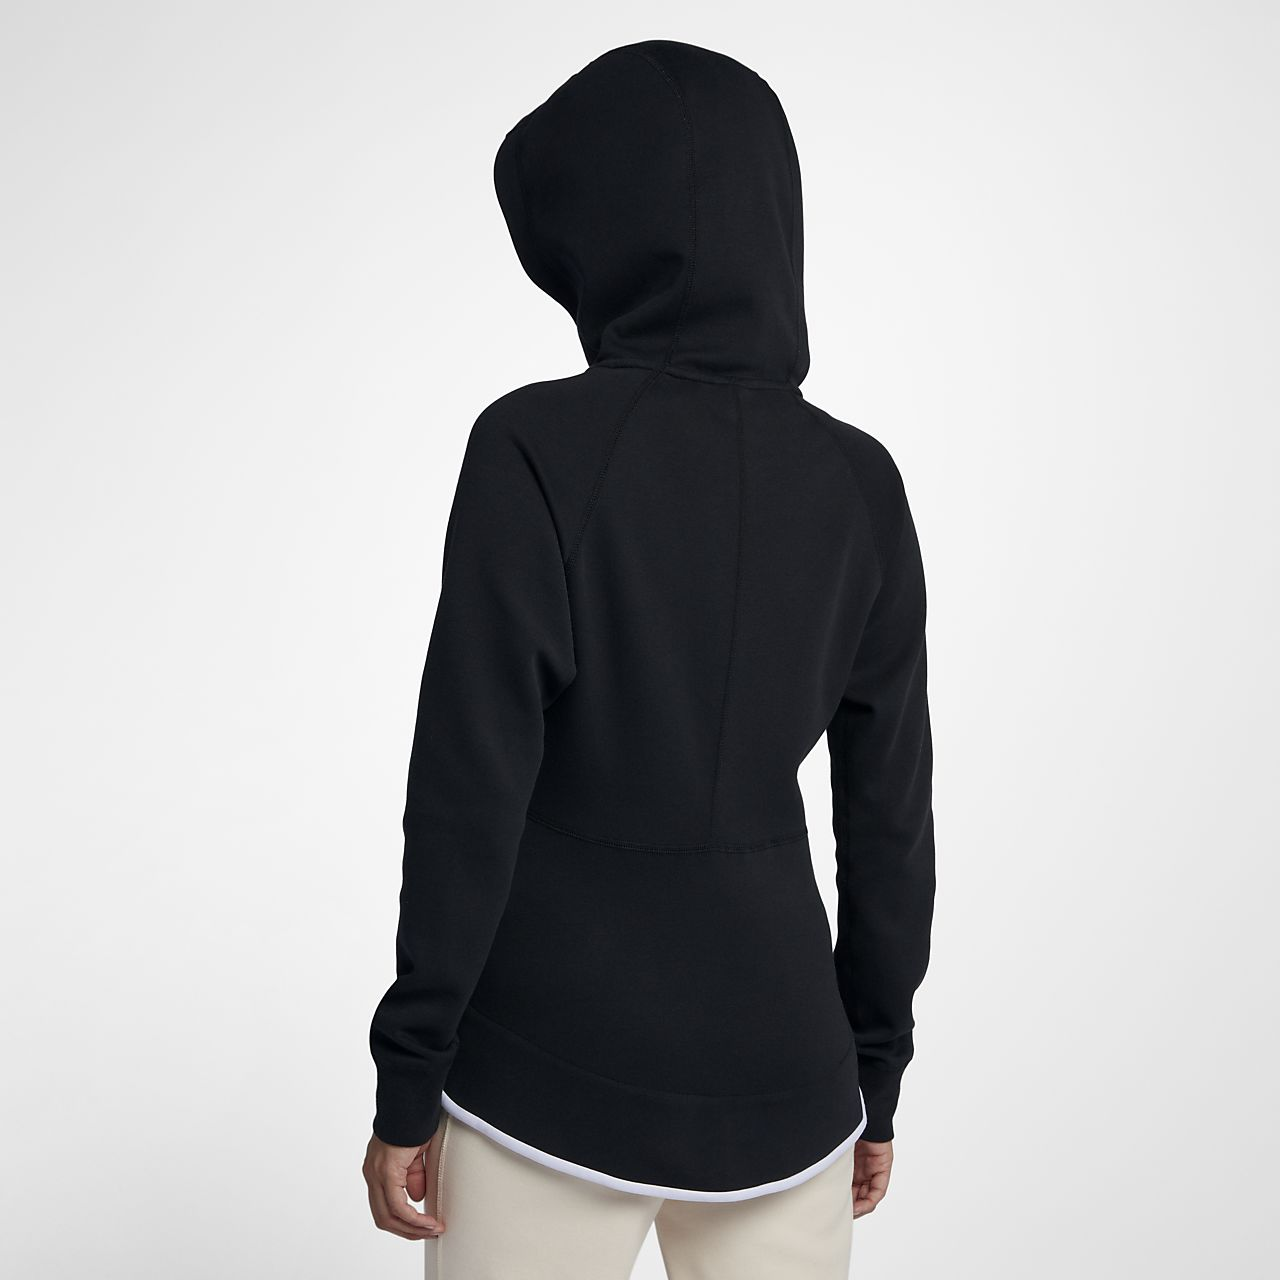 f305ad8e23cc Nike Sportswear Tech Fleece Windrunner Women s Full-Zip Hoodie. Nike ...